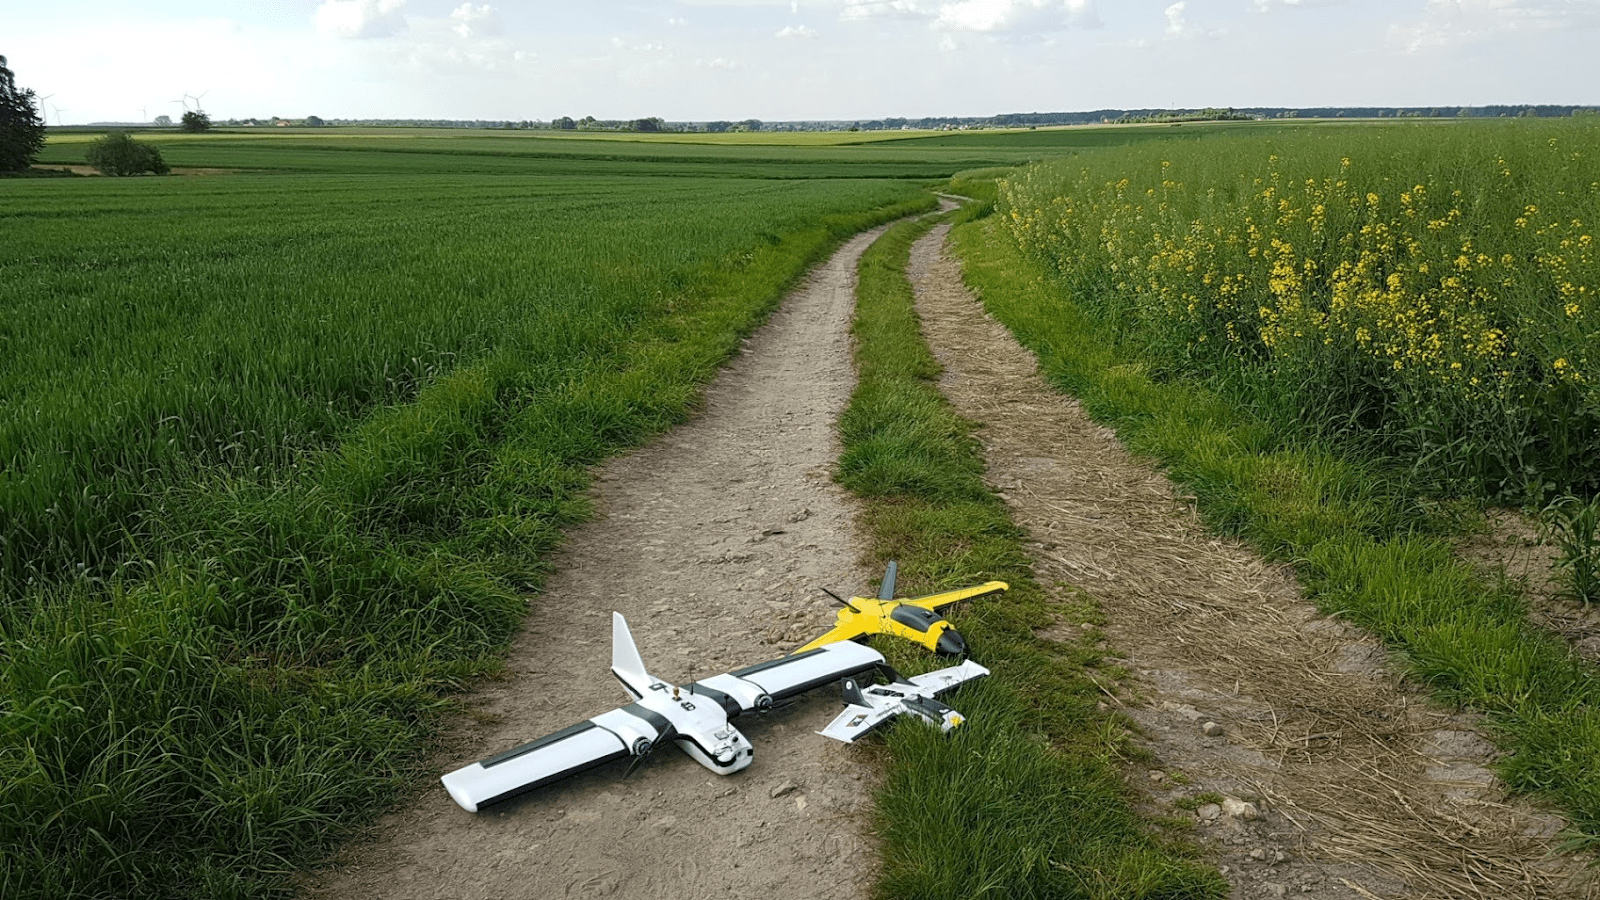 Some RC planes on a track